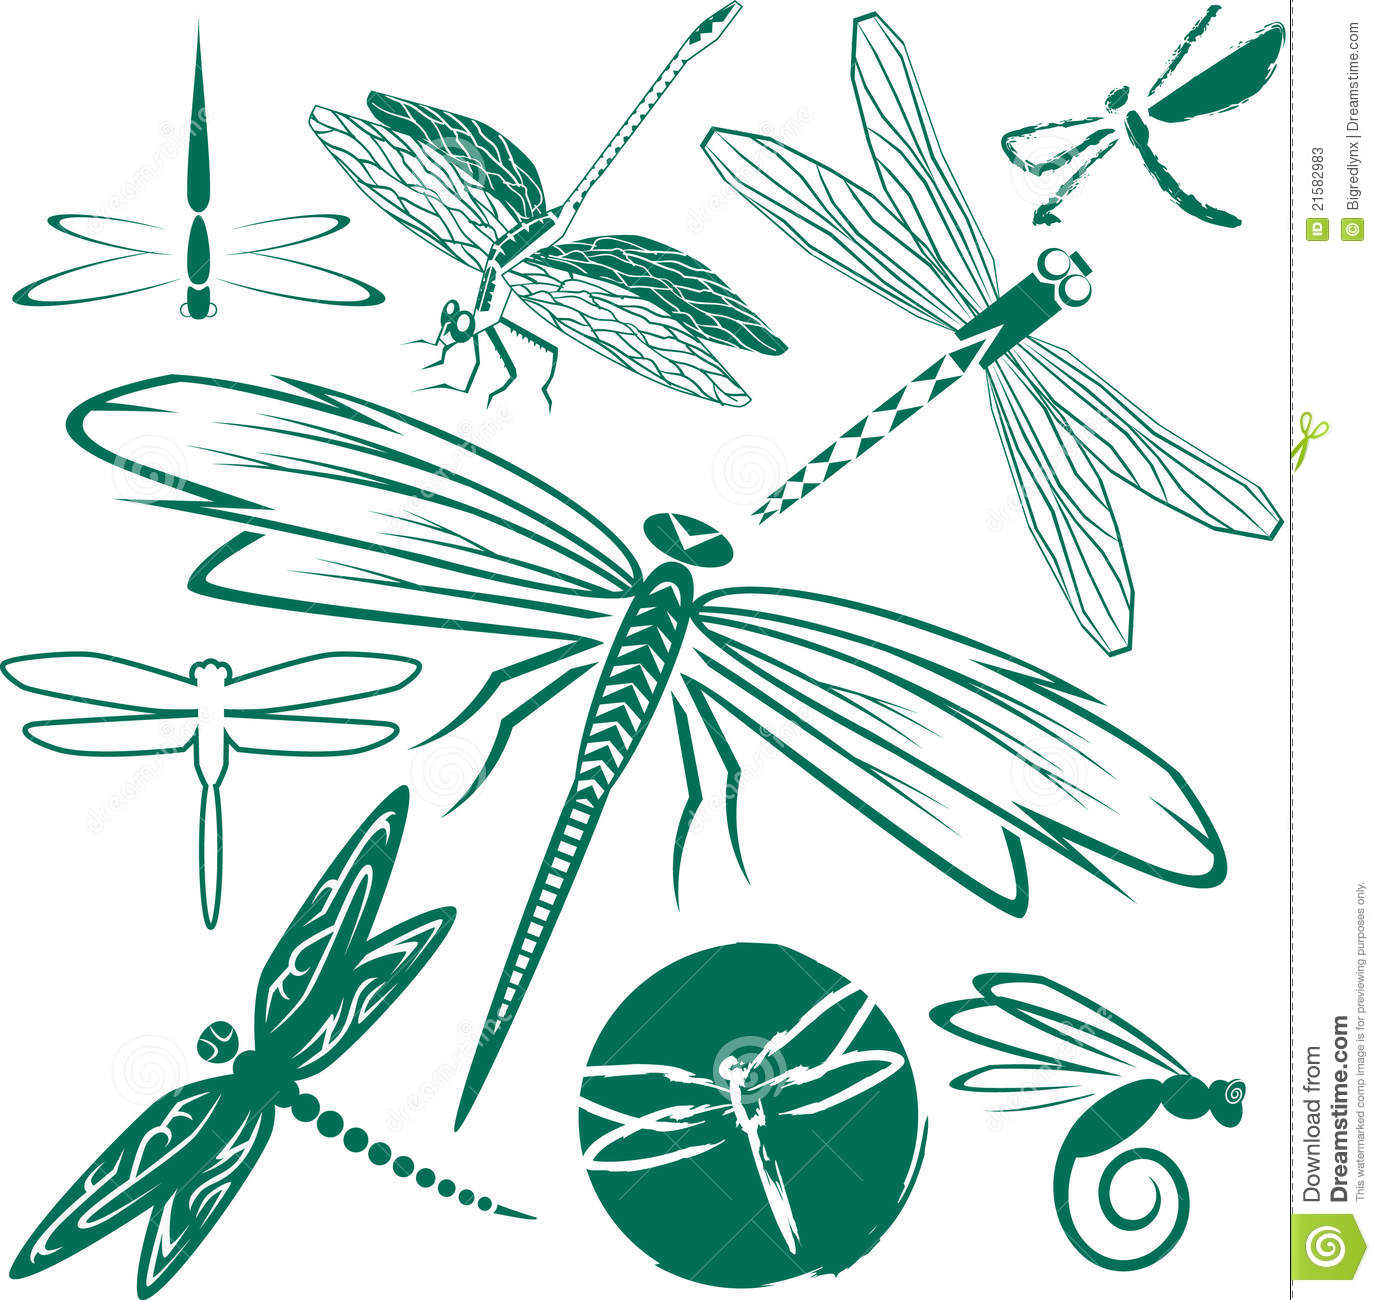 Clip Art Collection Of Various Dragonflies